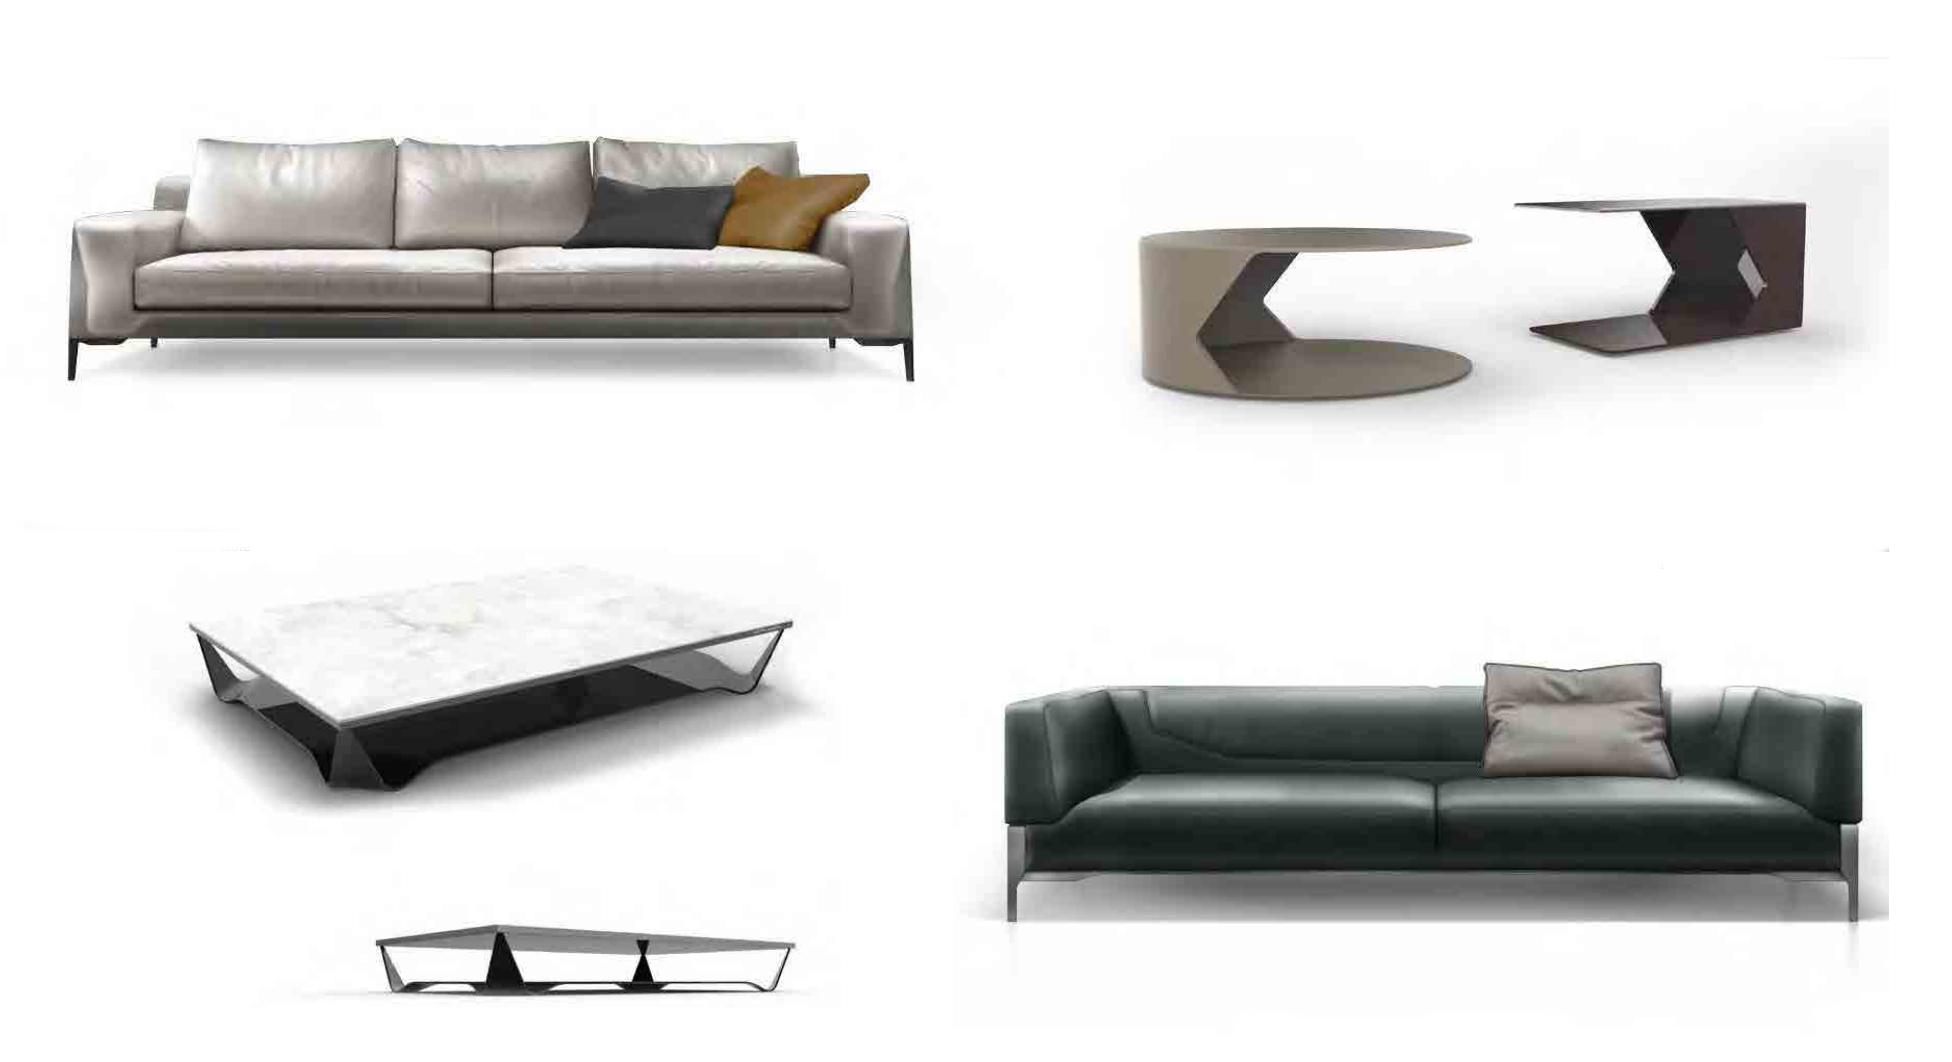 Aston Martin Furniture Aladecor